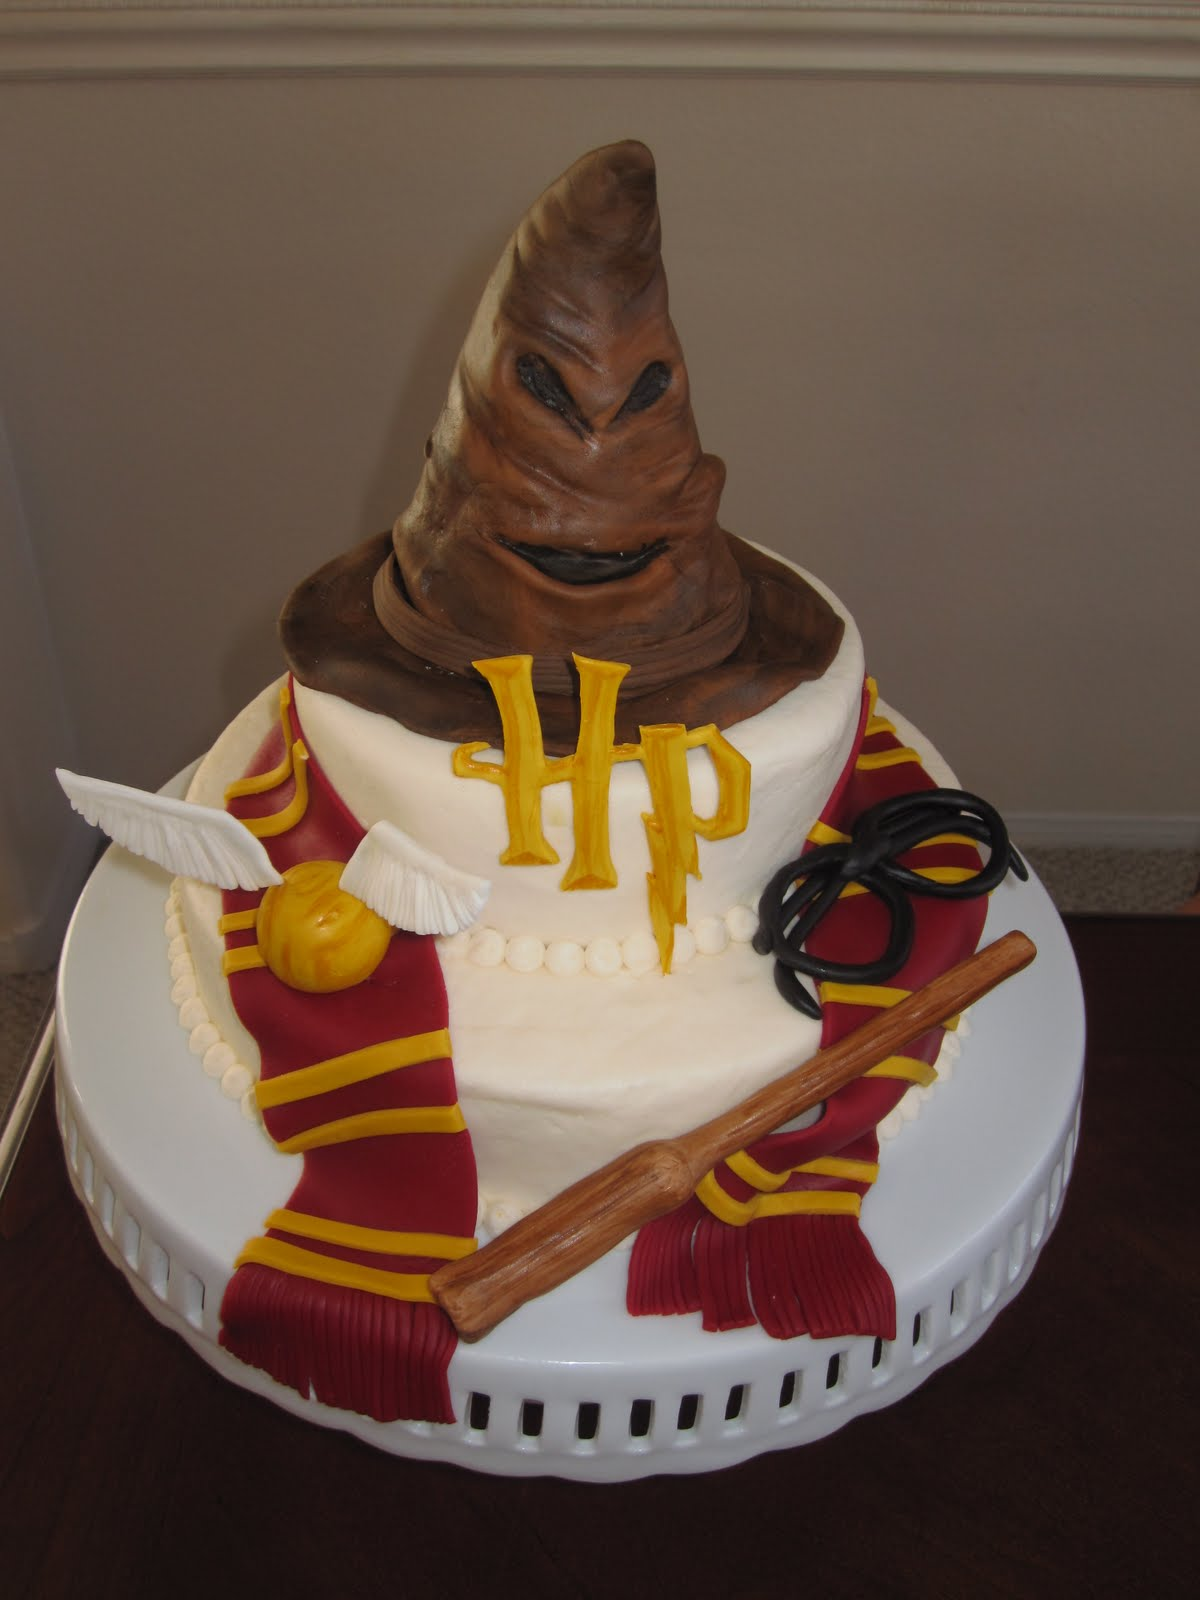 Tremendous Harry Potter Cakes Decoration Ideas Little Birthday Cakes Personalised Birthday Cards Paralily Jamesorg